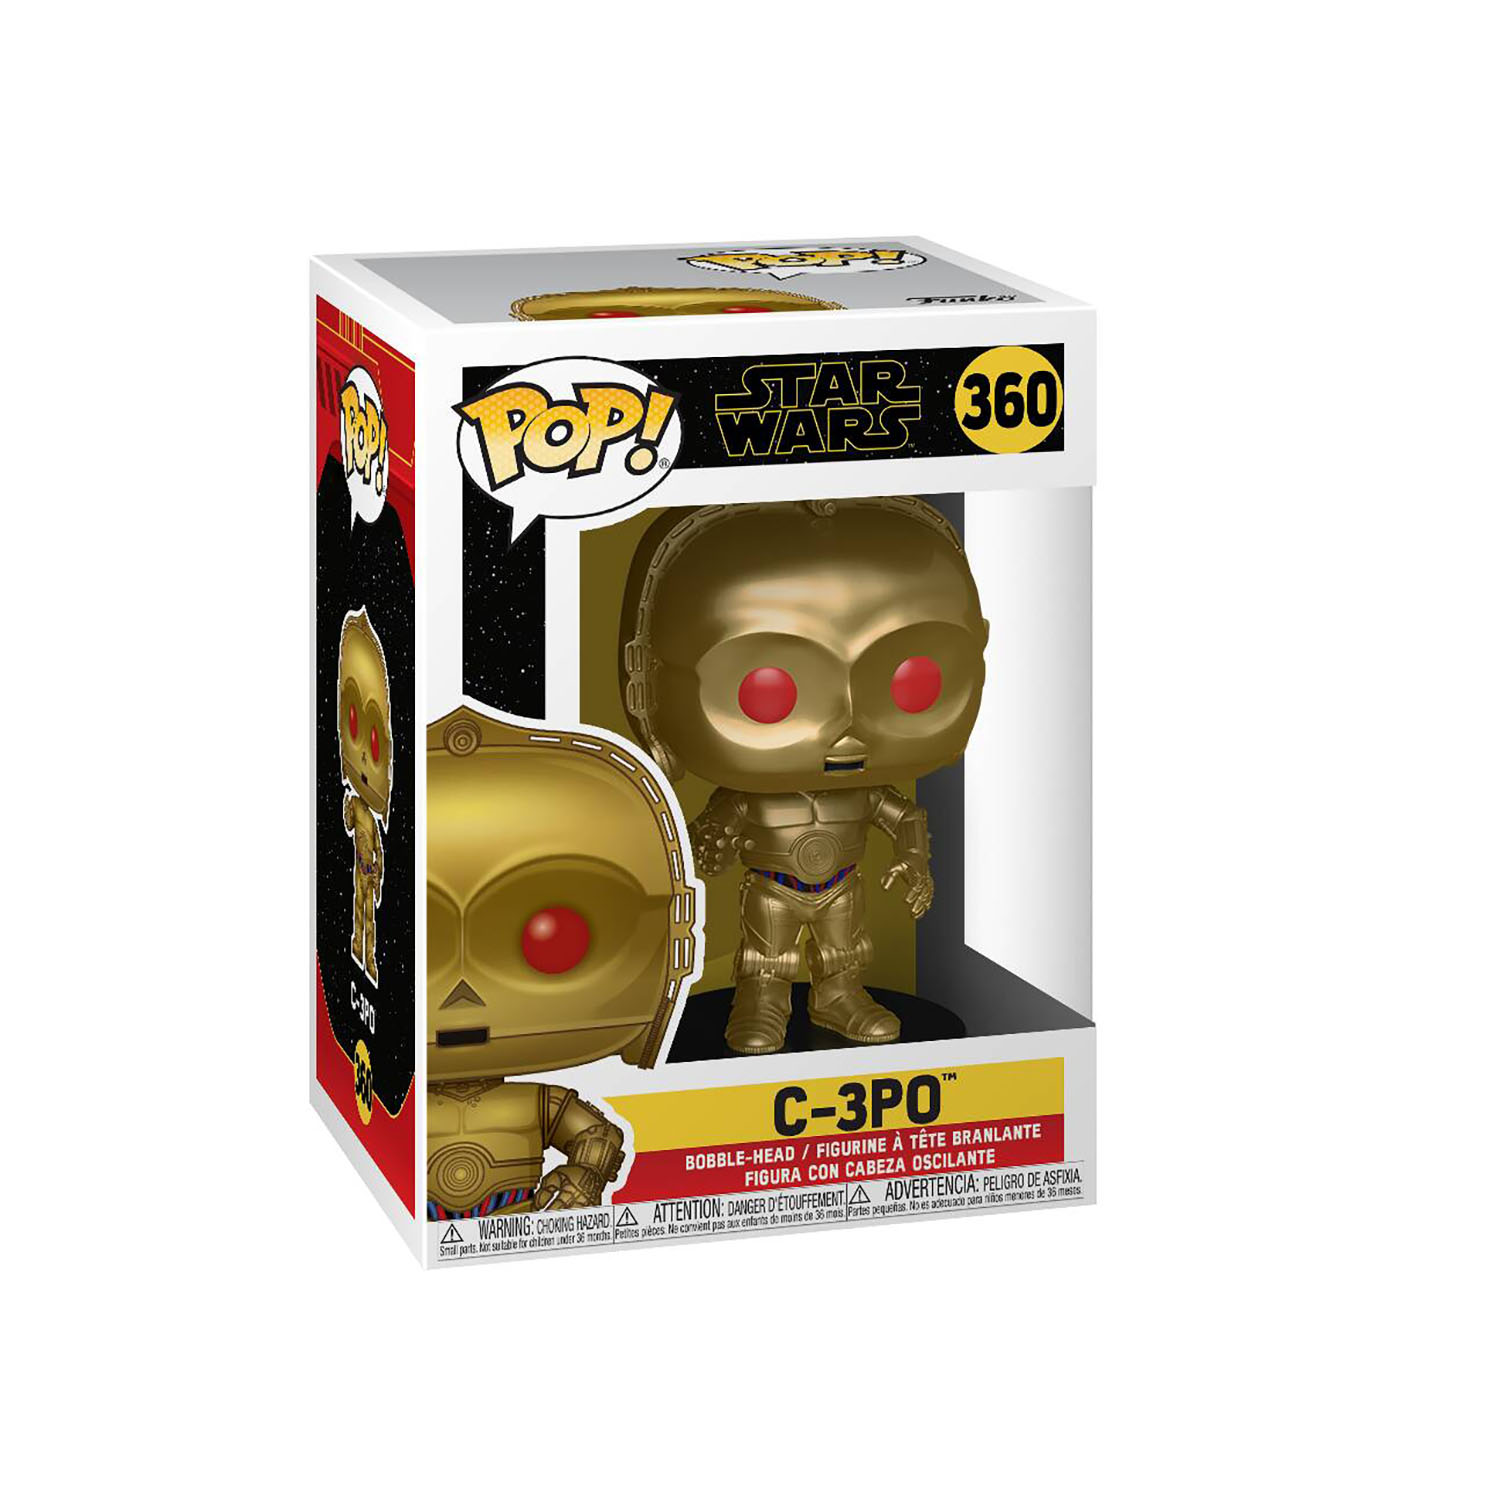 TROS Dark Rey and C-3PO (Red Eyes) Bobble Head Toy 2-Pack 4